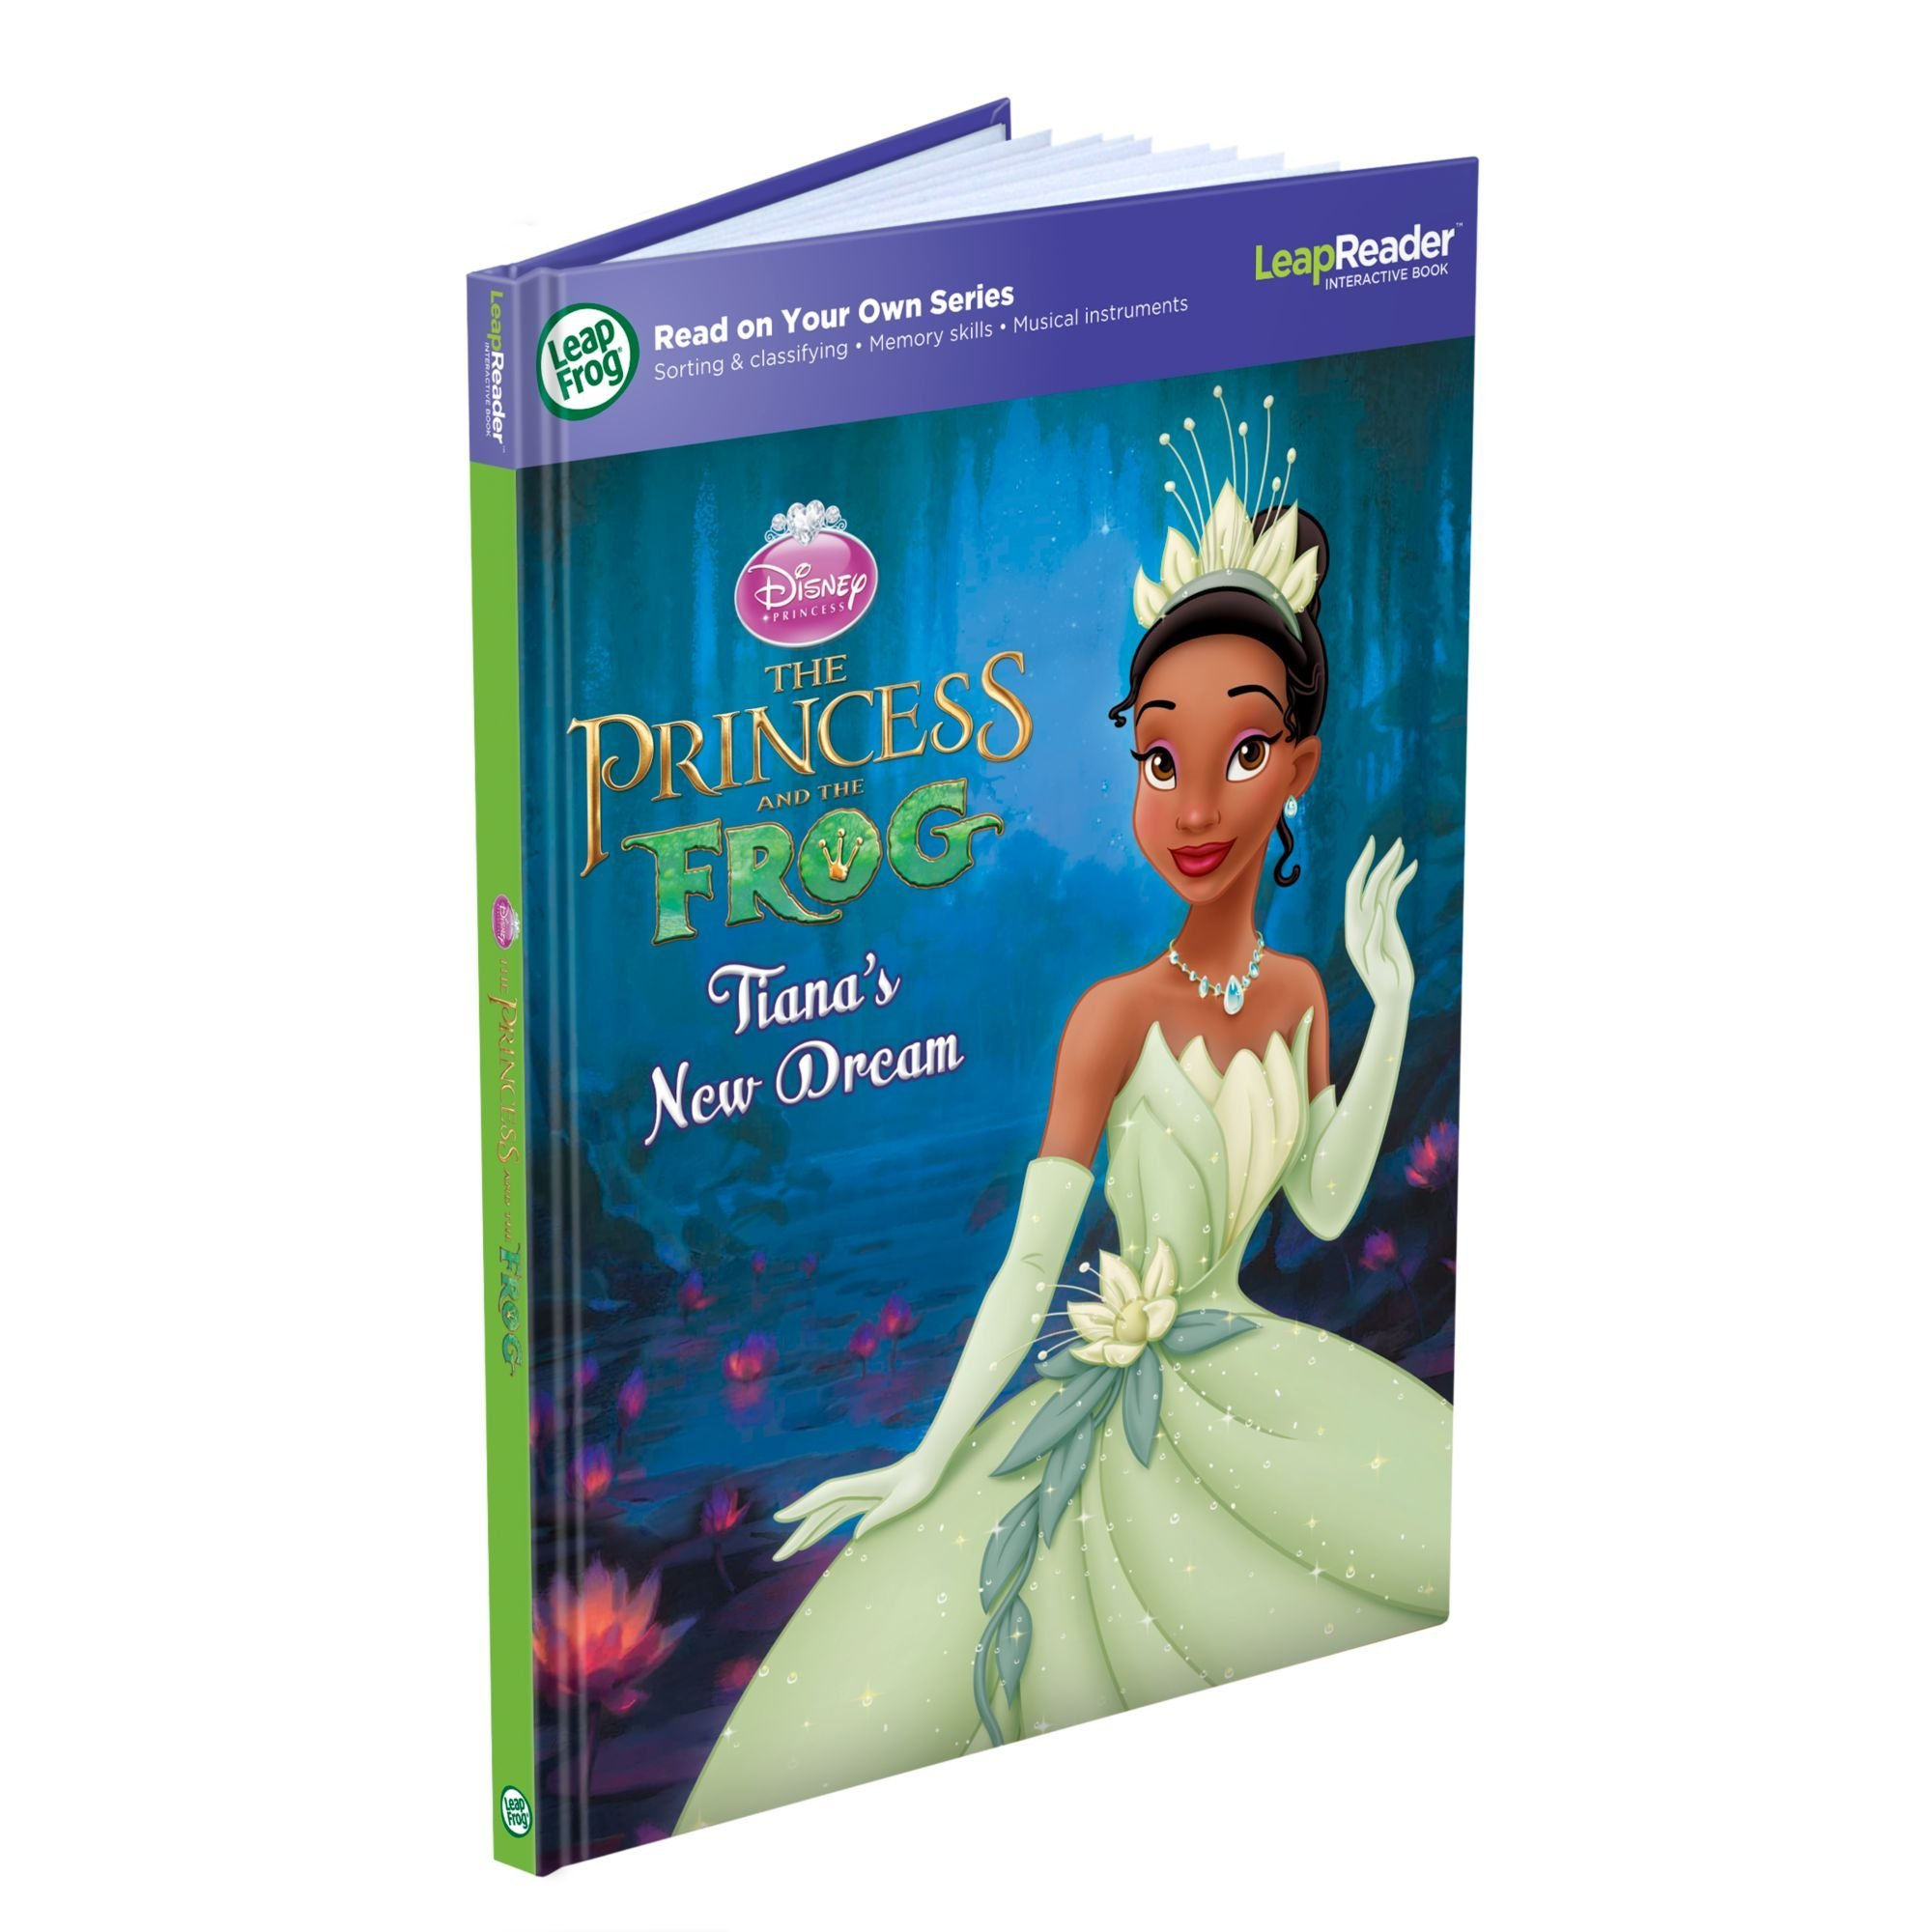 LeapFrog LeapReader Book: Disney Princess and the Frog (works with Tag) by LeapFrog